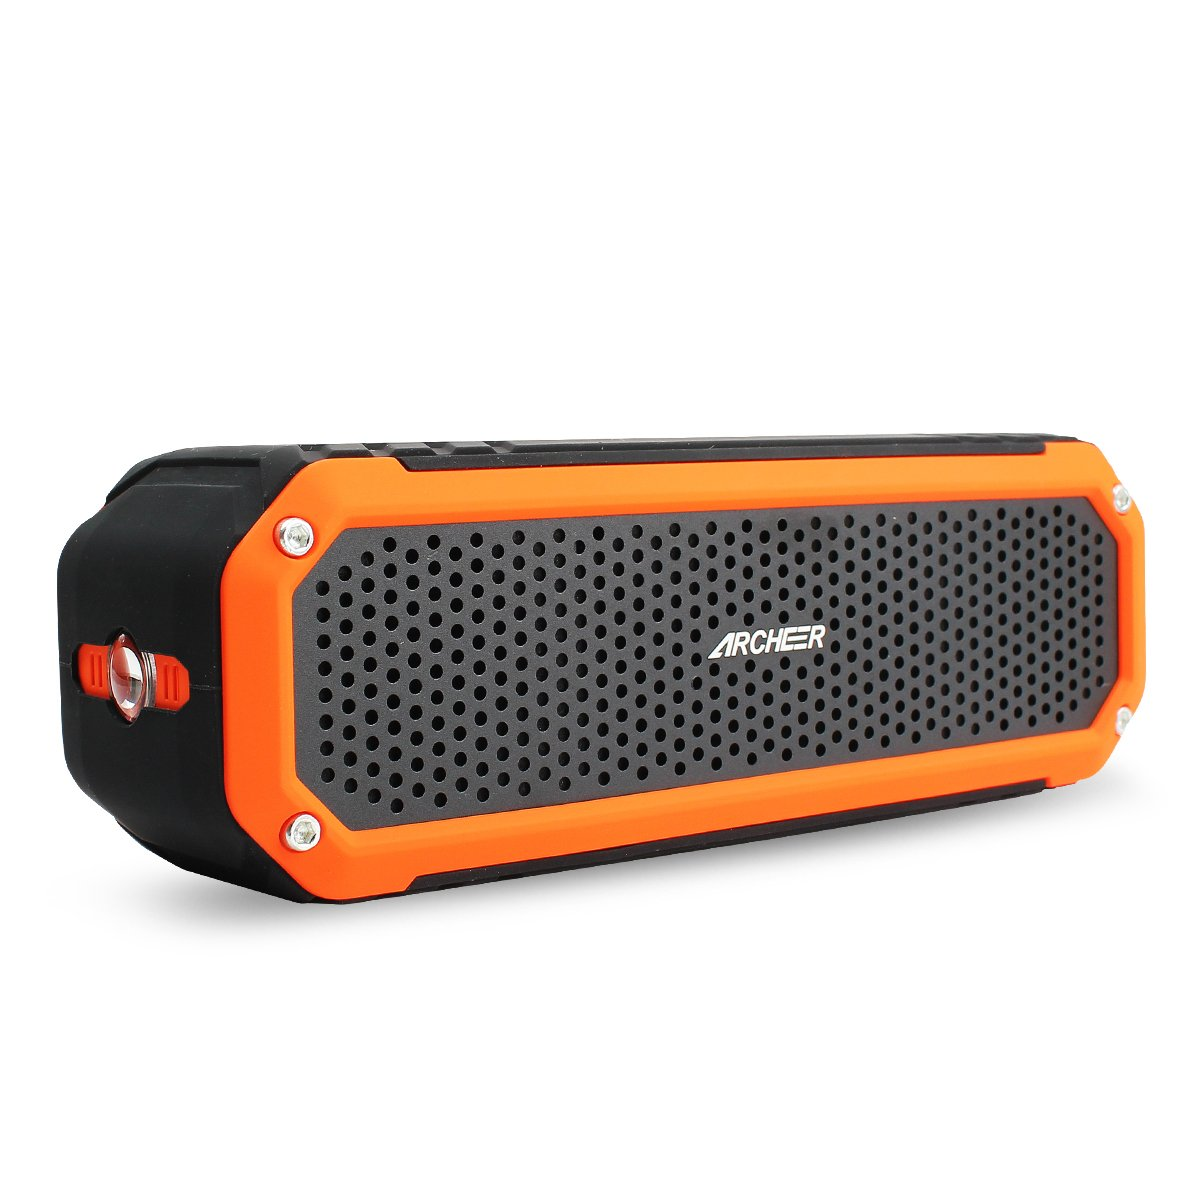 Best Bluetooth Speakers 2020.Top 10 Best Bluetooth Speakers For Phone And Ipad 2019 2020